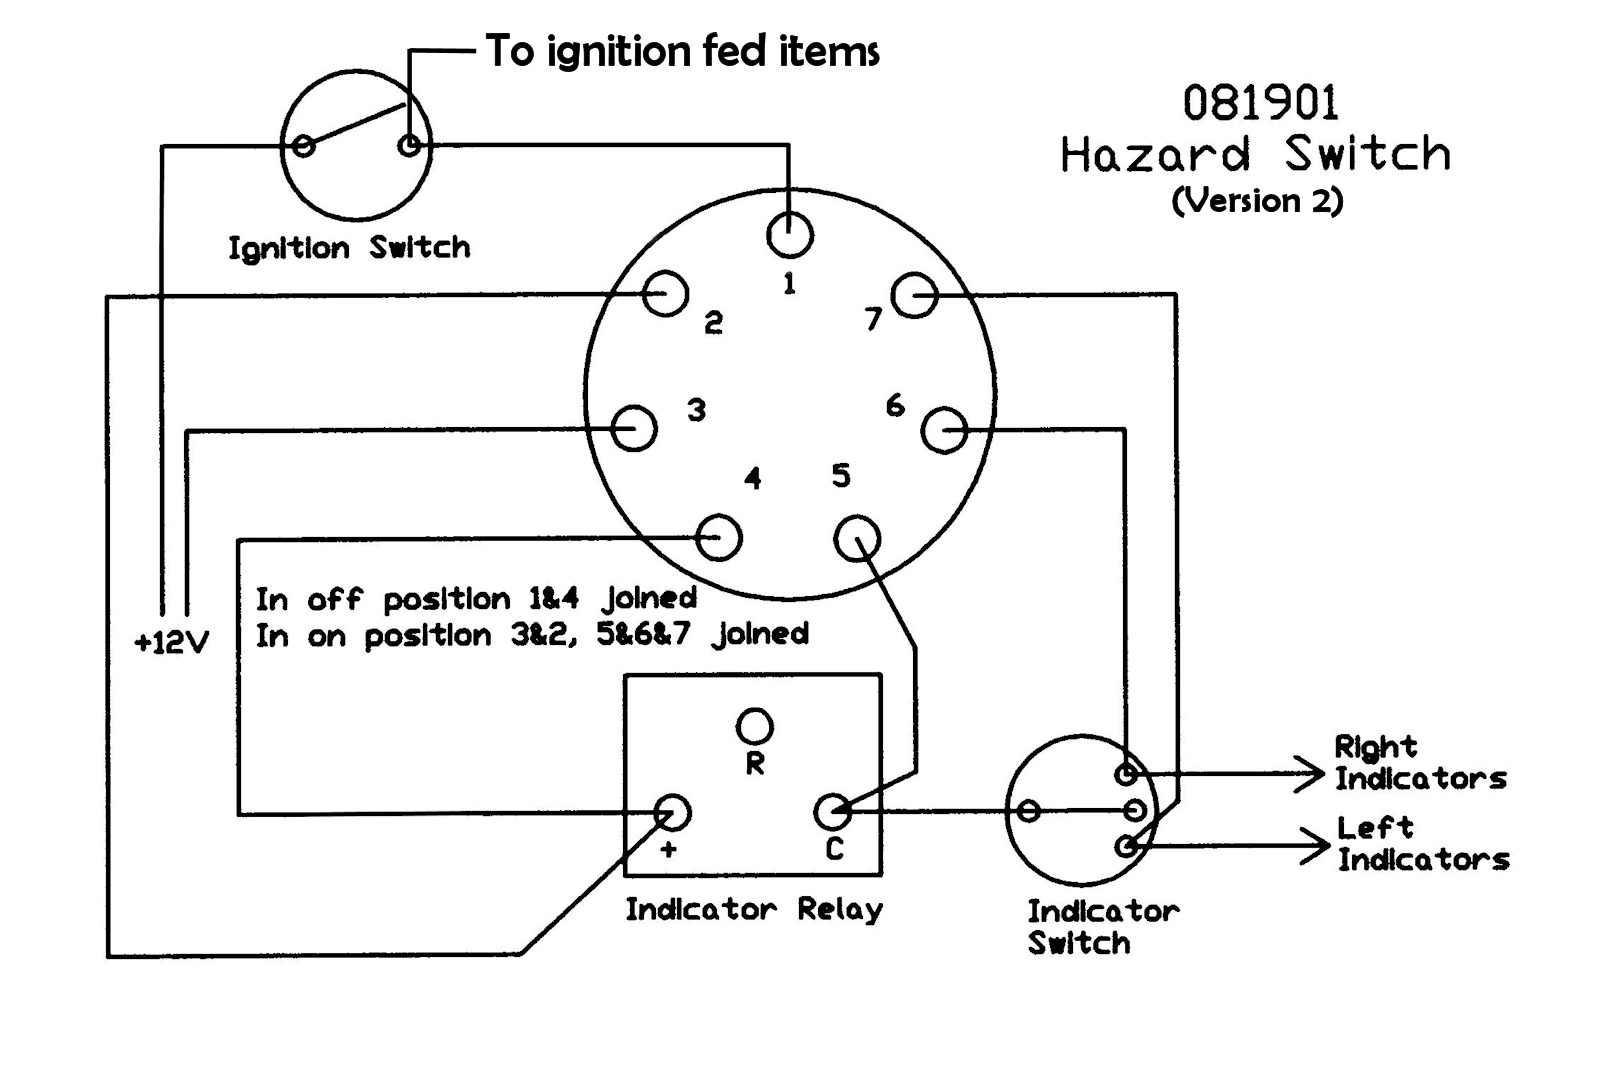 081901_wiring_diagram_v2 panel mounted push on hazard switch lucas indicator switch wiring diagram at gsmportal.co